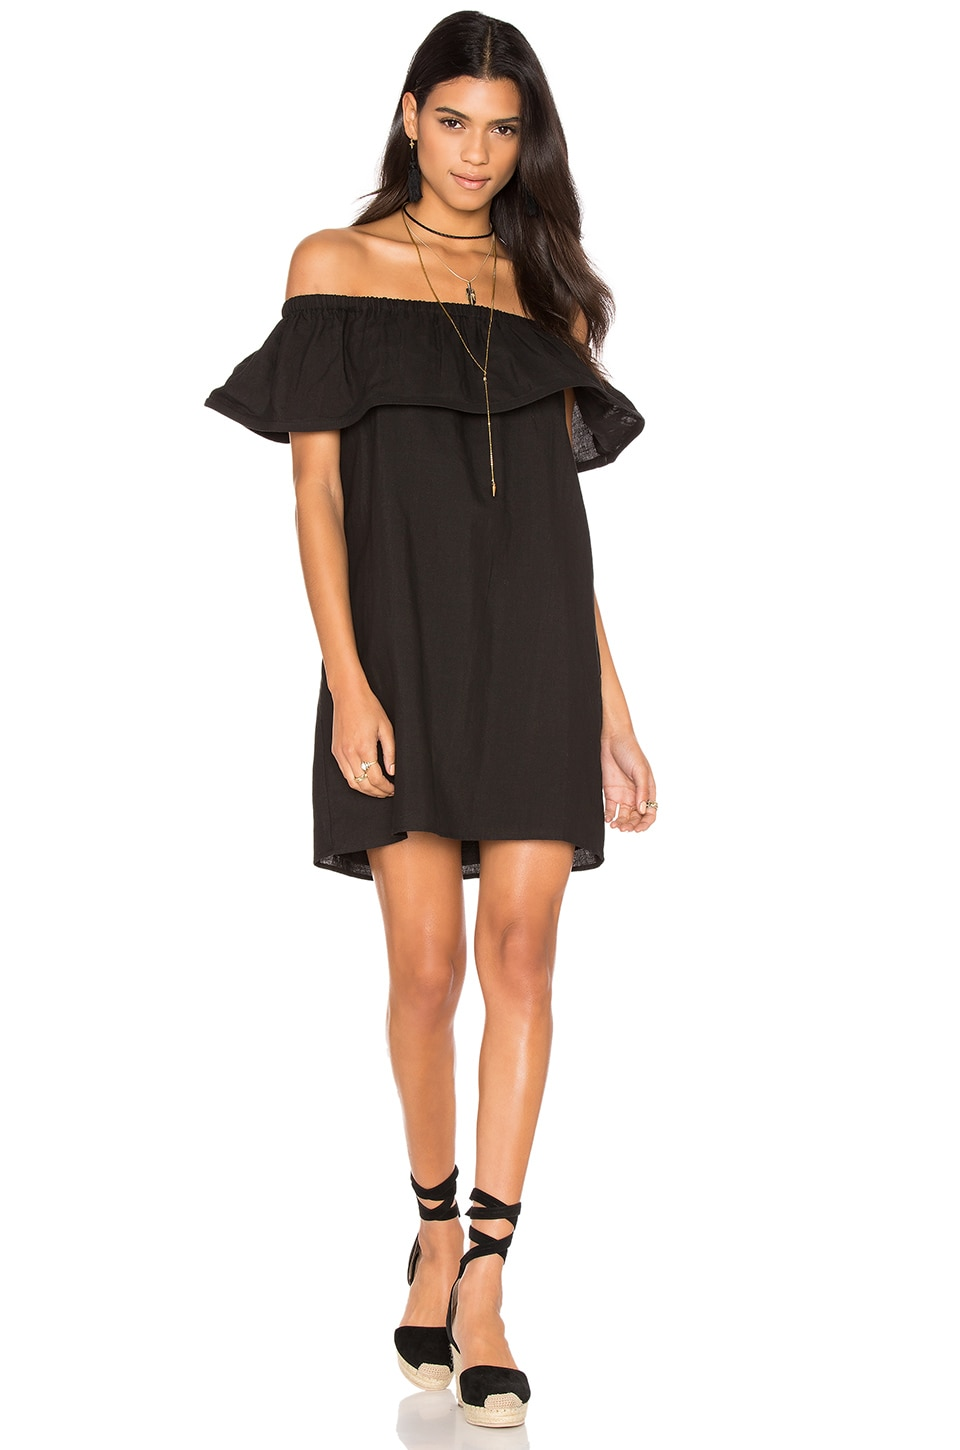 Concorde Ruffle Dress by Line & Dot